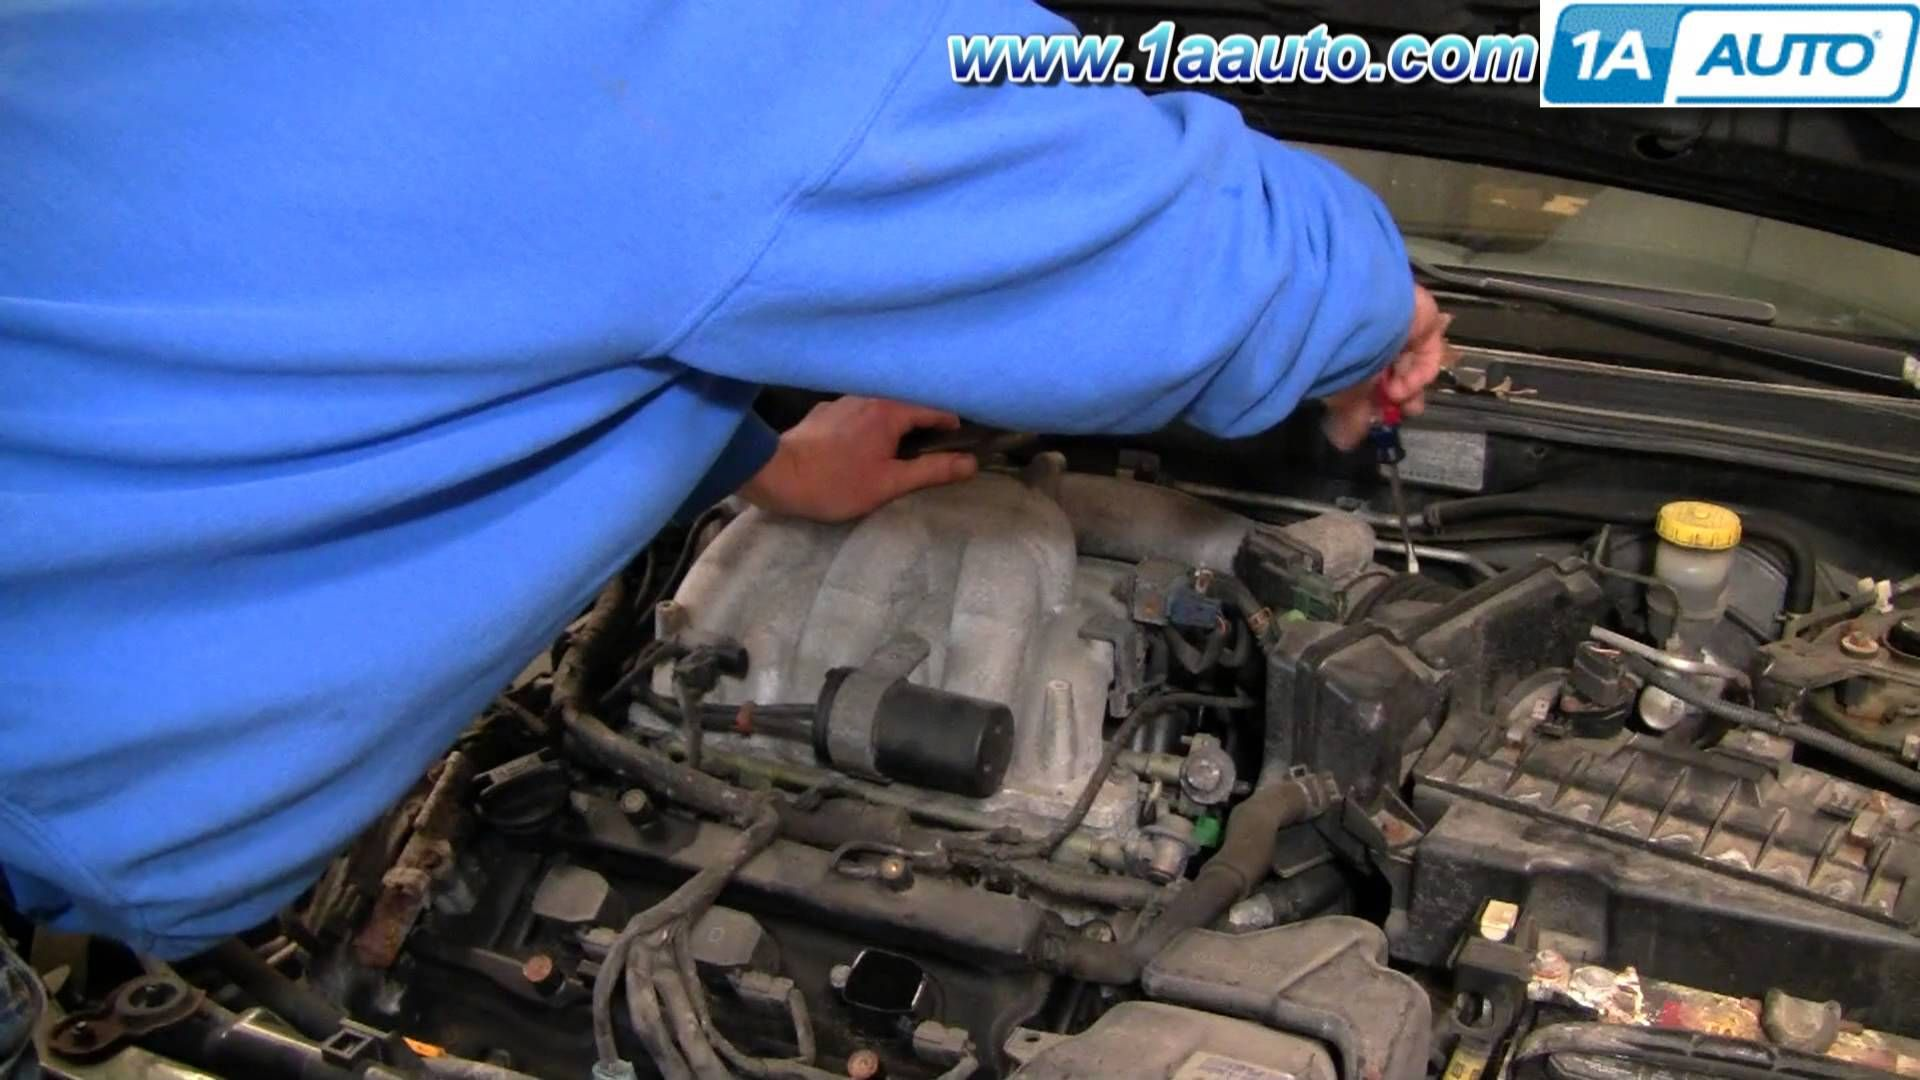 awesome How To Replace Install Change Spark Plugs 2000-03 Nissan Maxima 3.5L